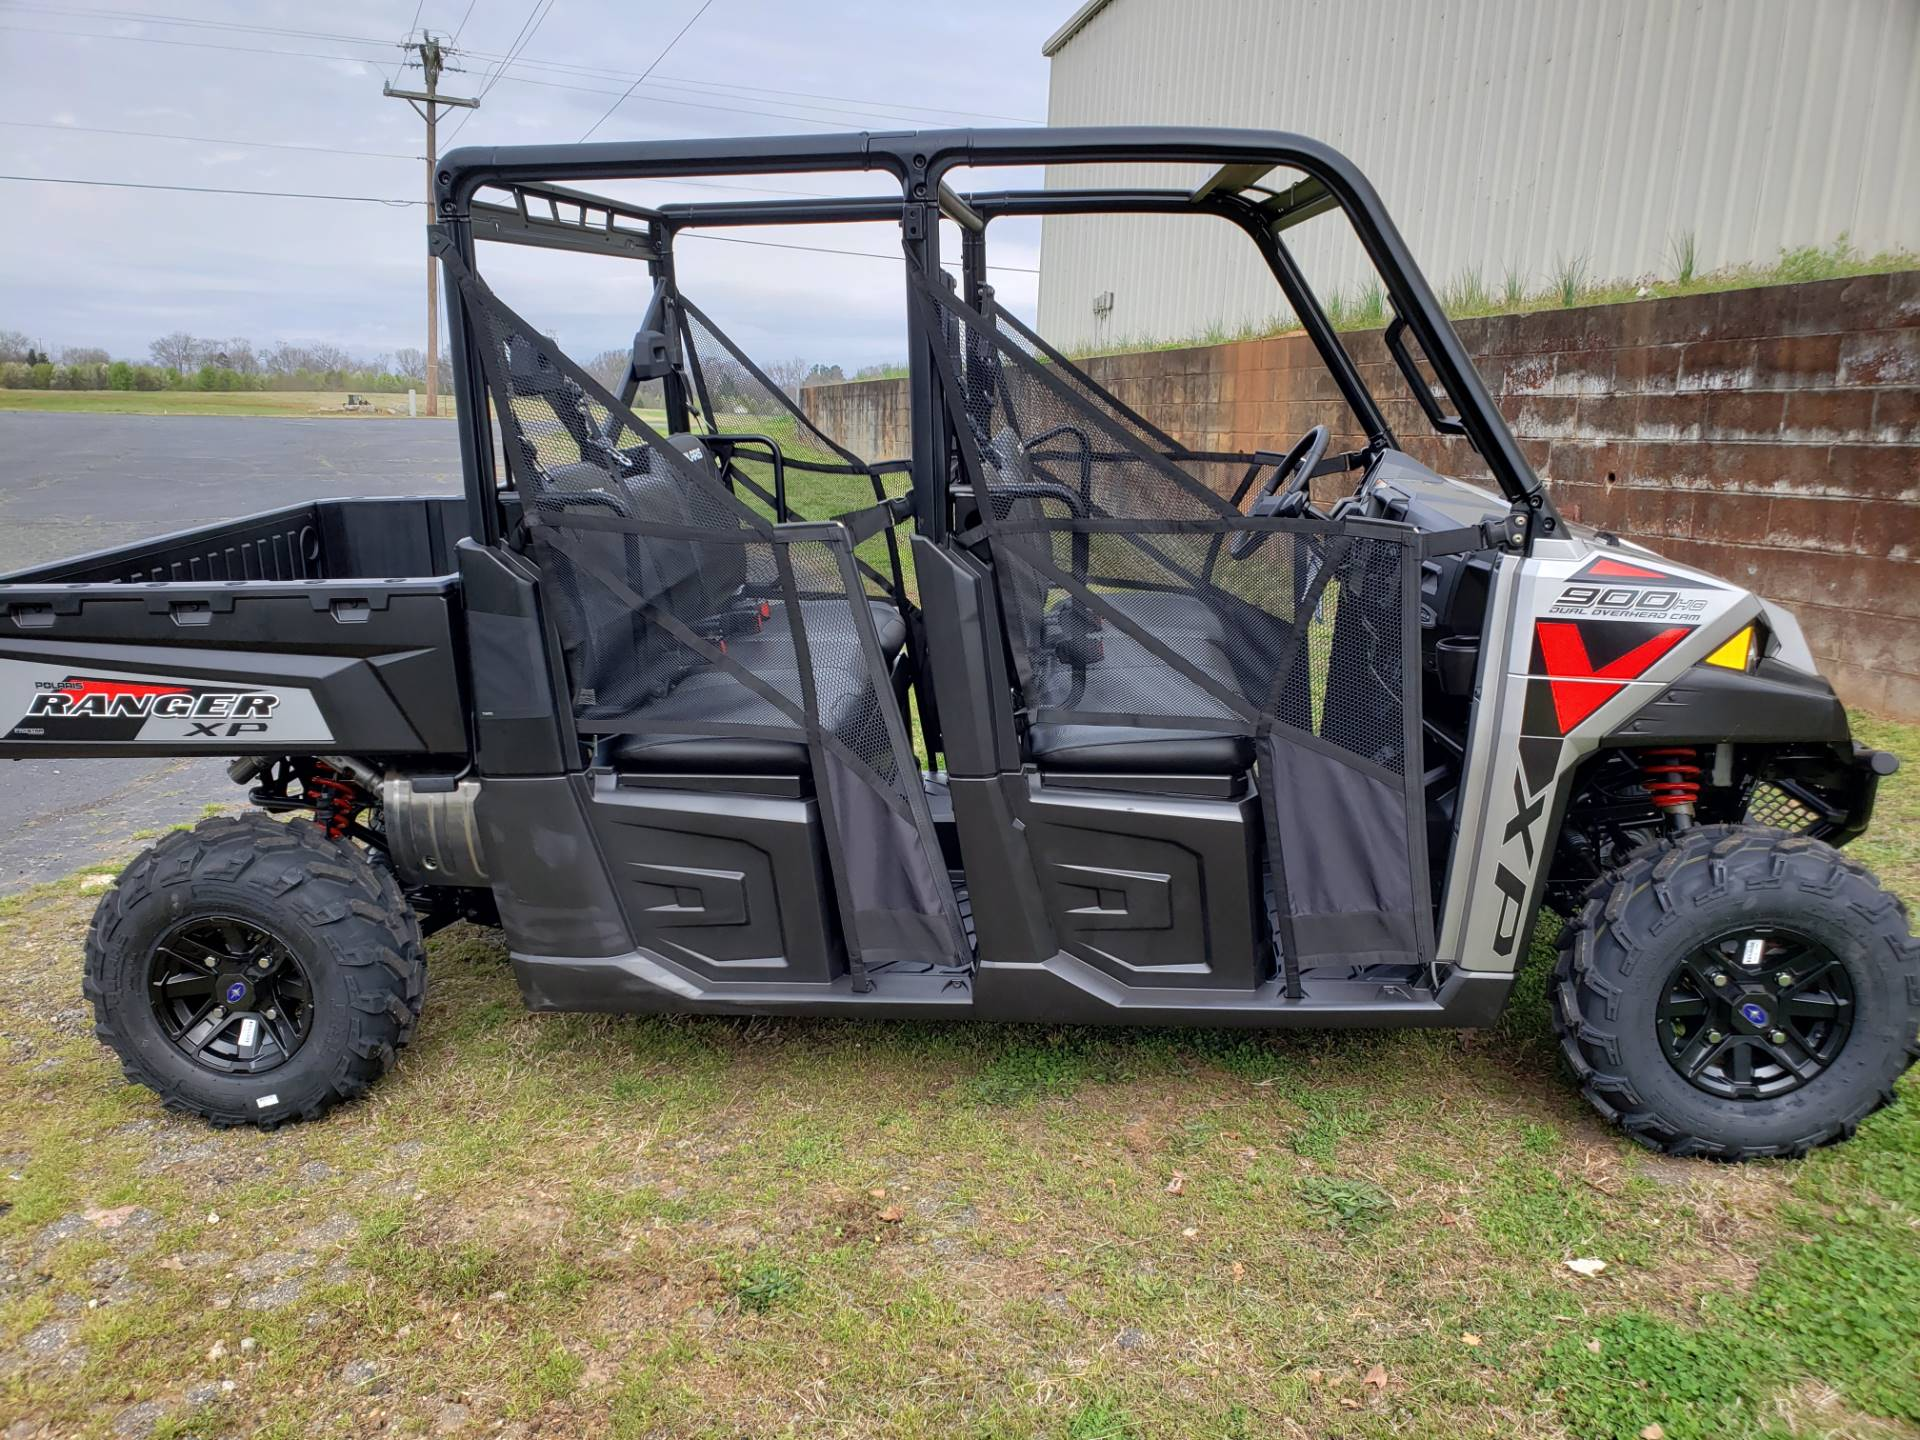 2019 Polaris Ranger Crew XP 900 EPS in Greer, South Carolina - Photo 7